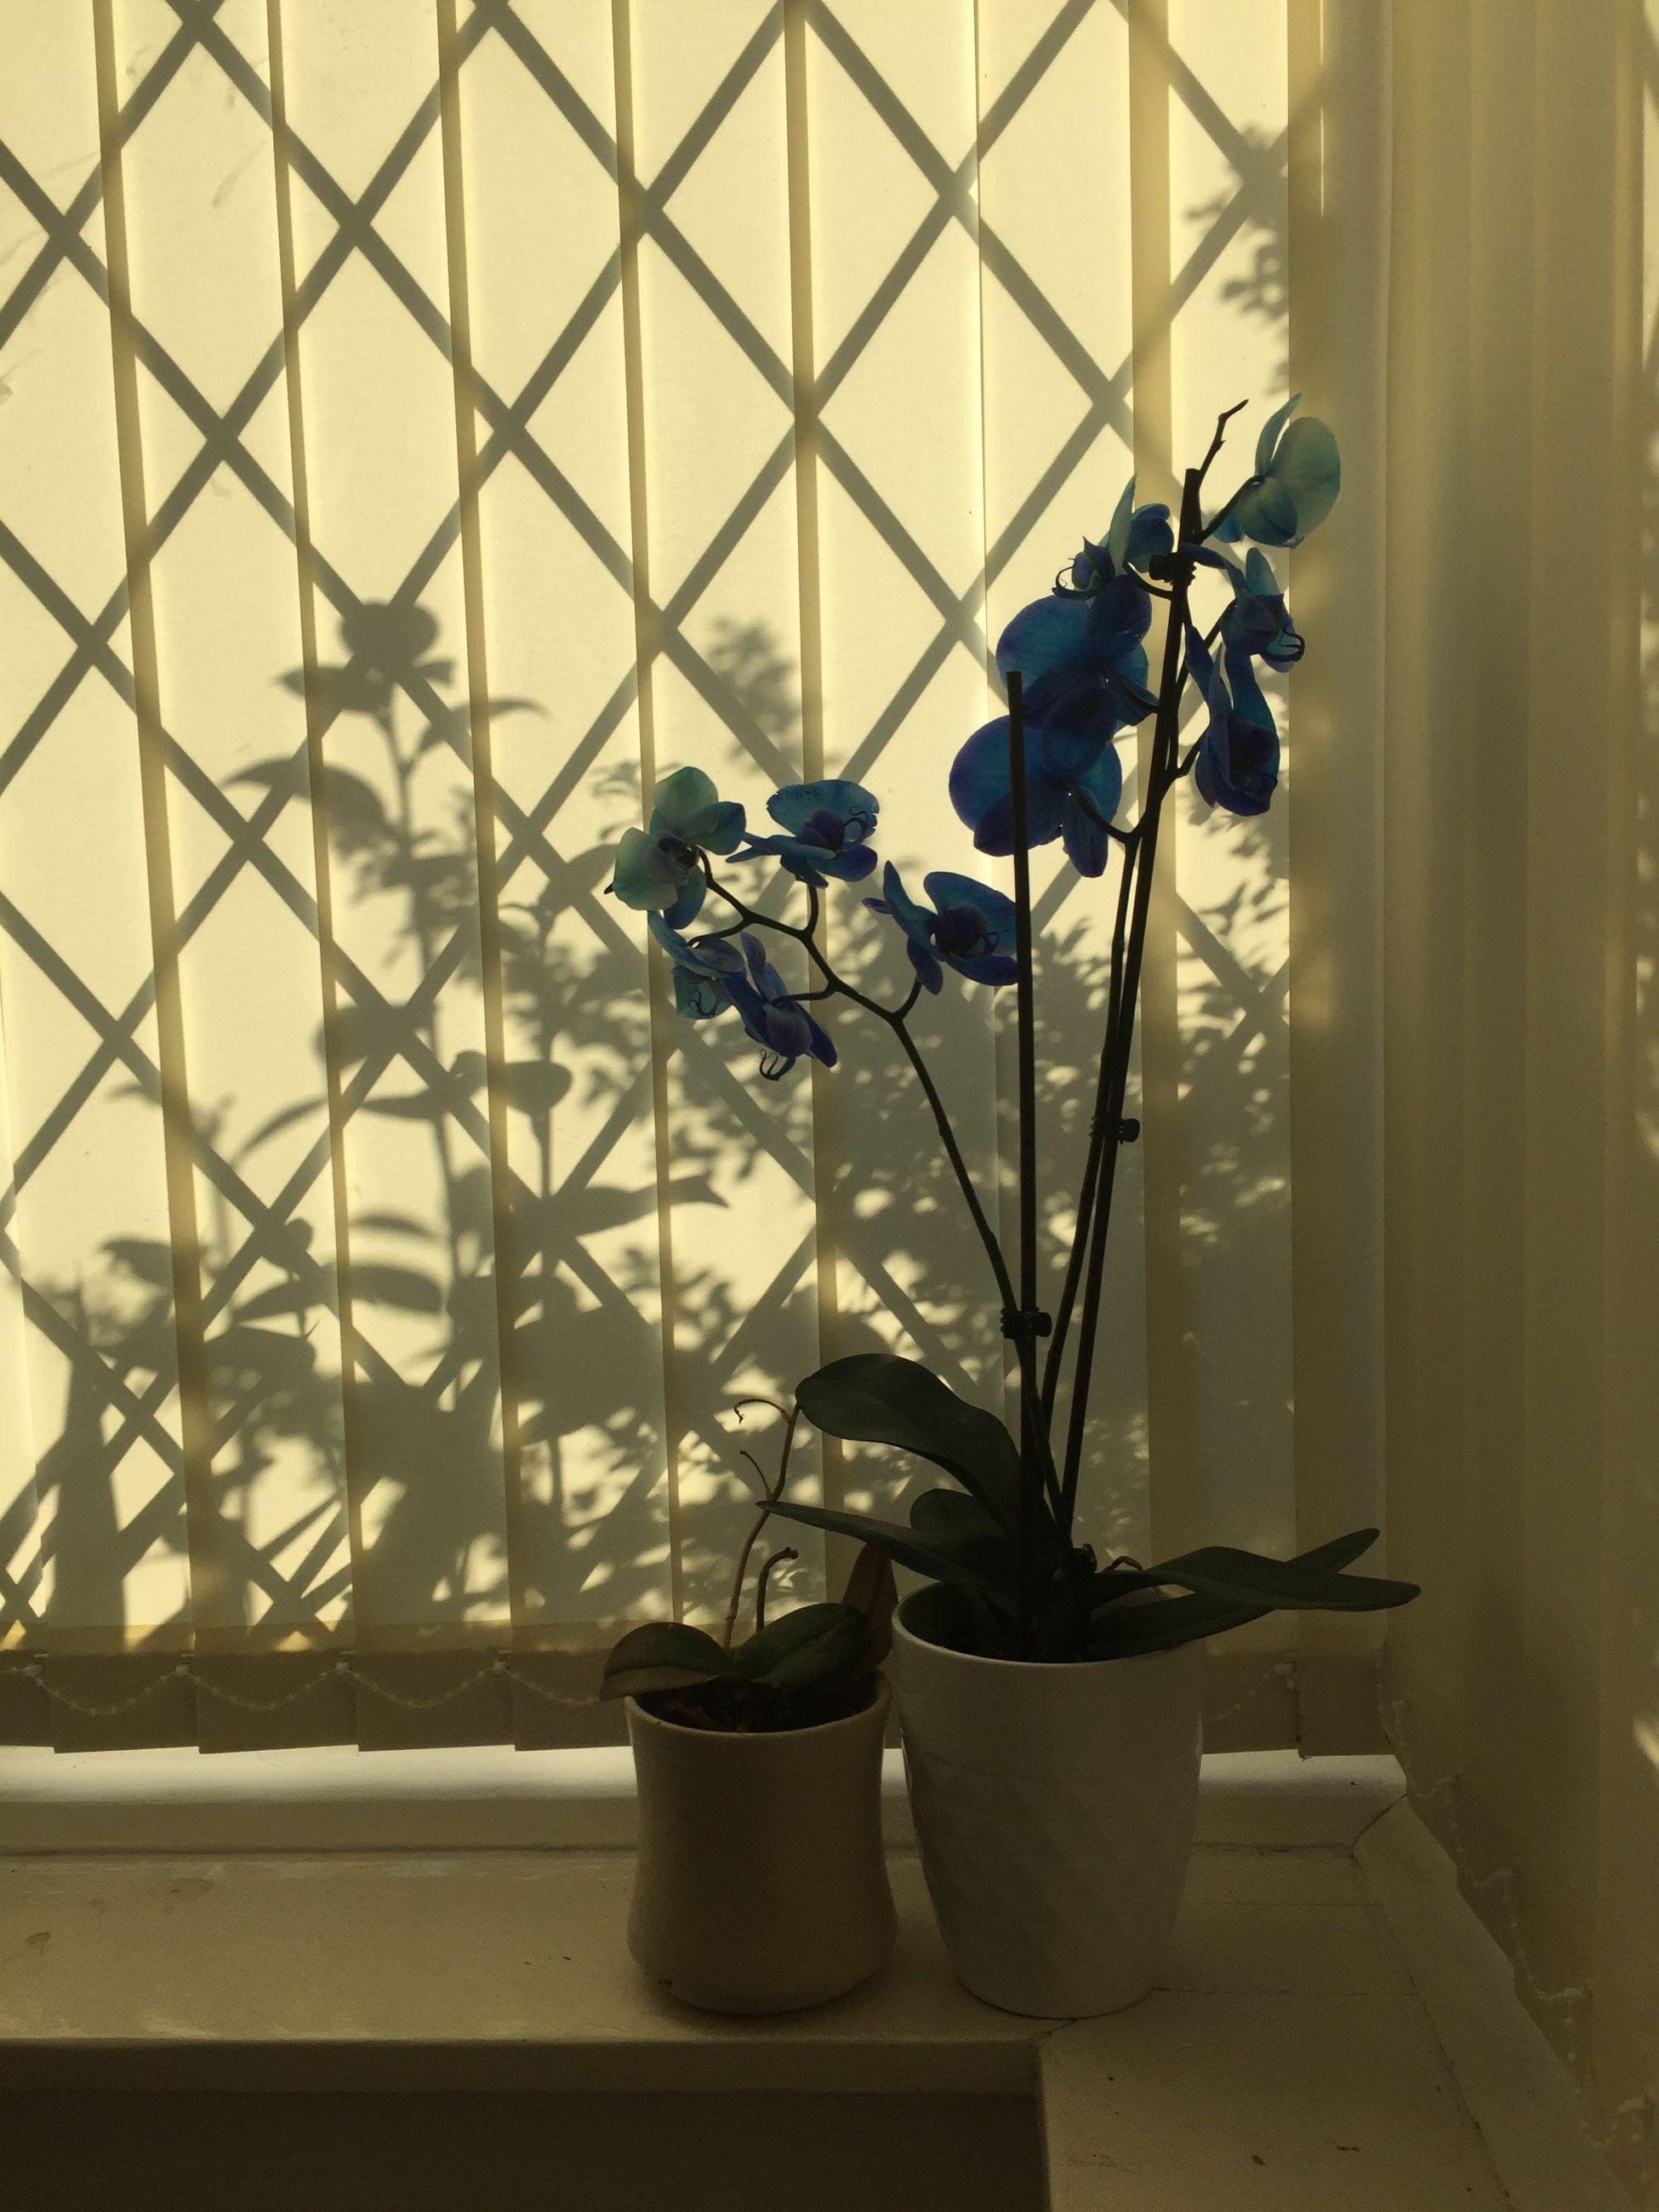 no people, growth, plant, nature, indoors, home interior, day, close-up, flower, beauty in nature